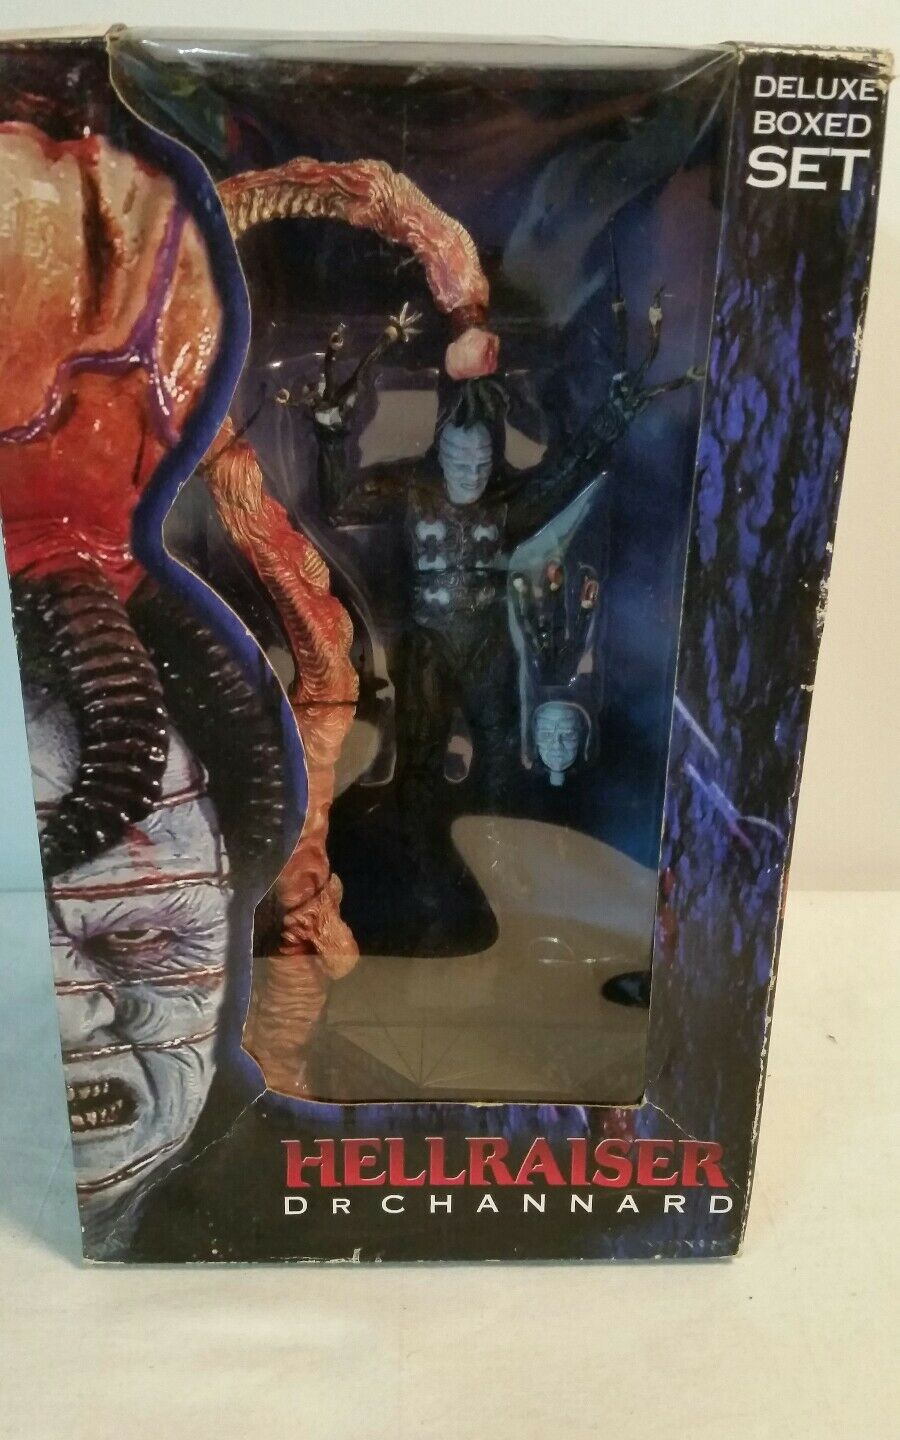 Hellraiser Dr Channard Deluxe Boxed Set Neca 2003